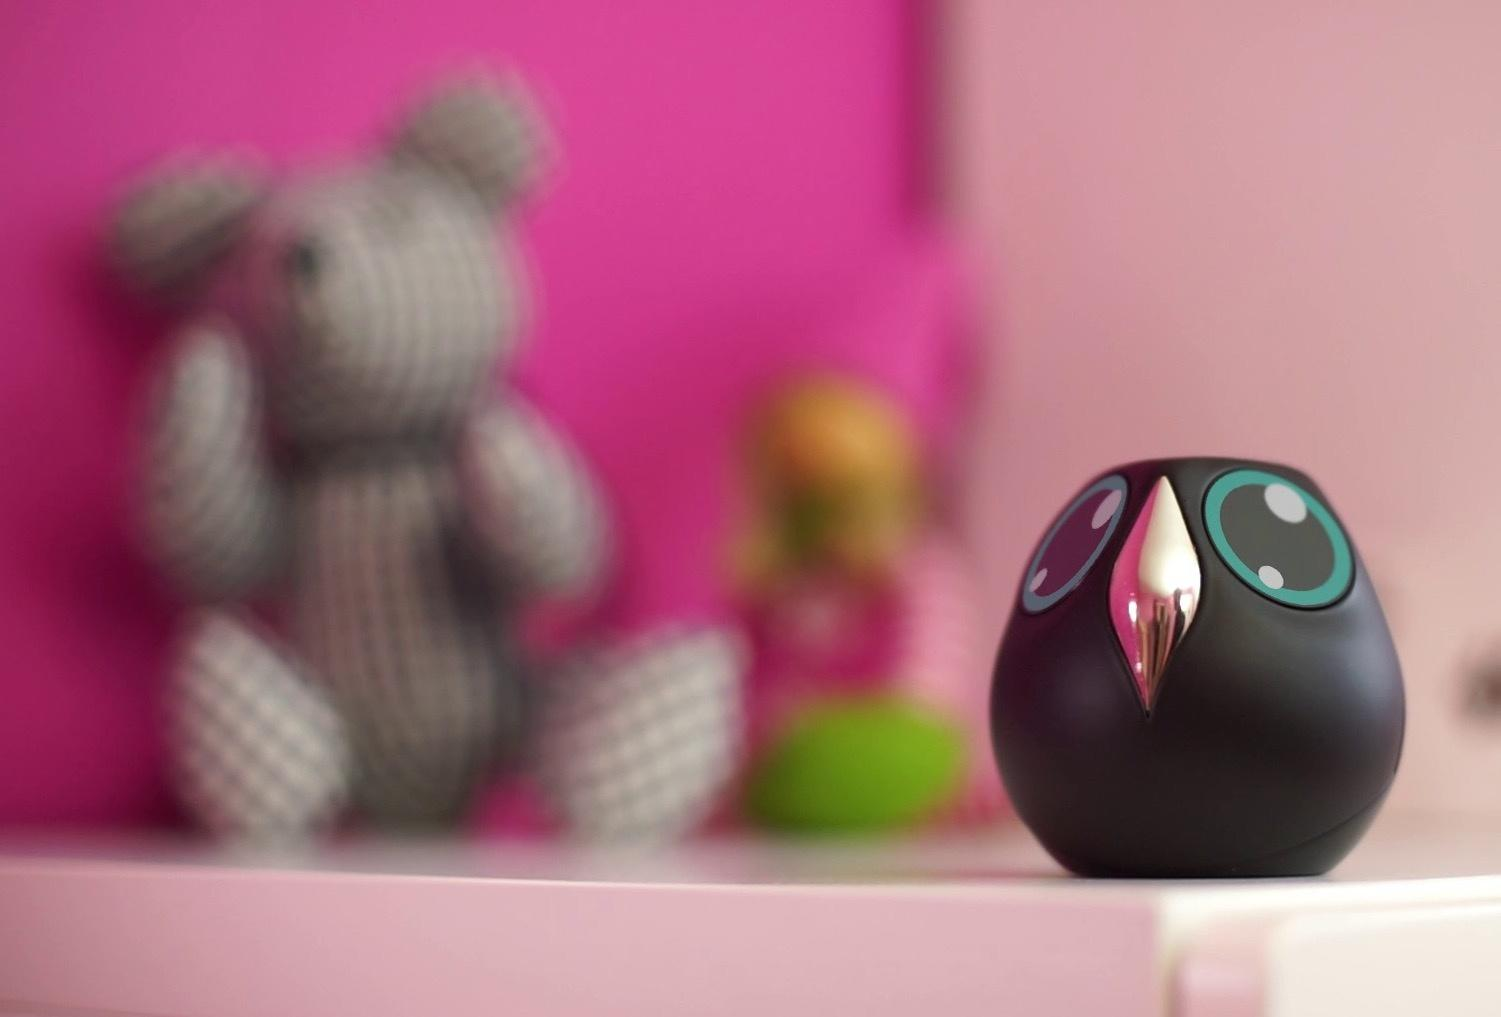 Ulo is an adorable owl that monitors your home